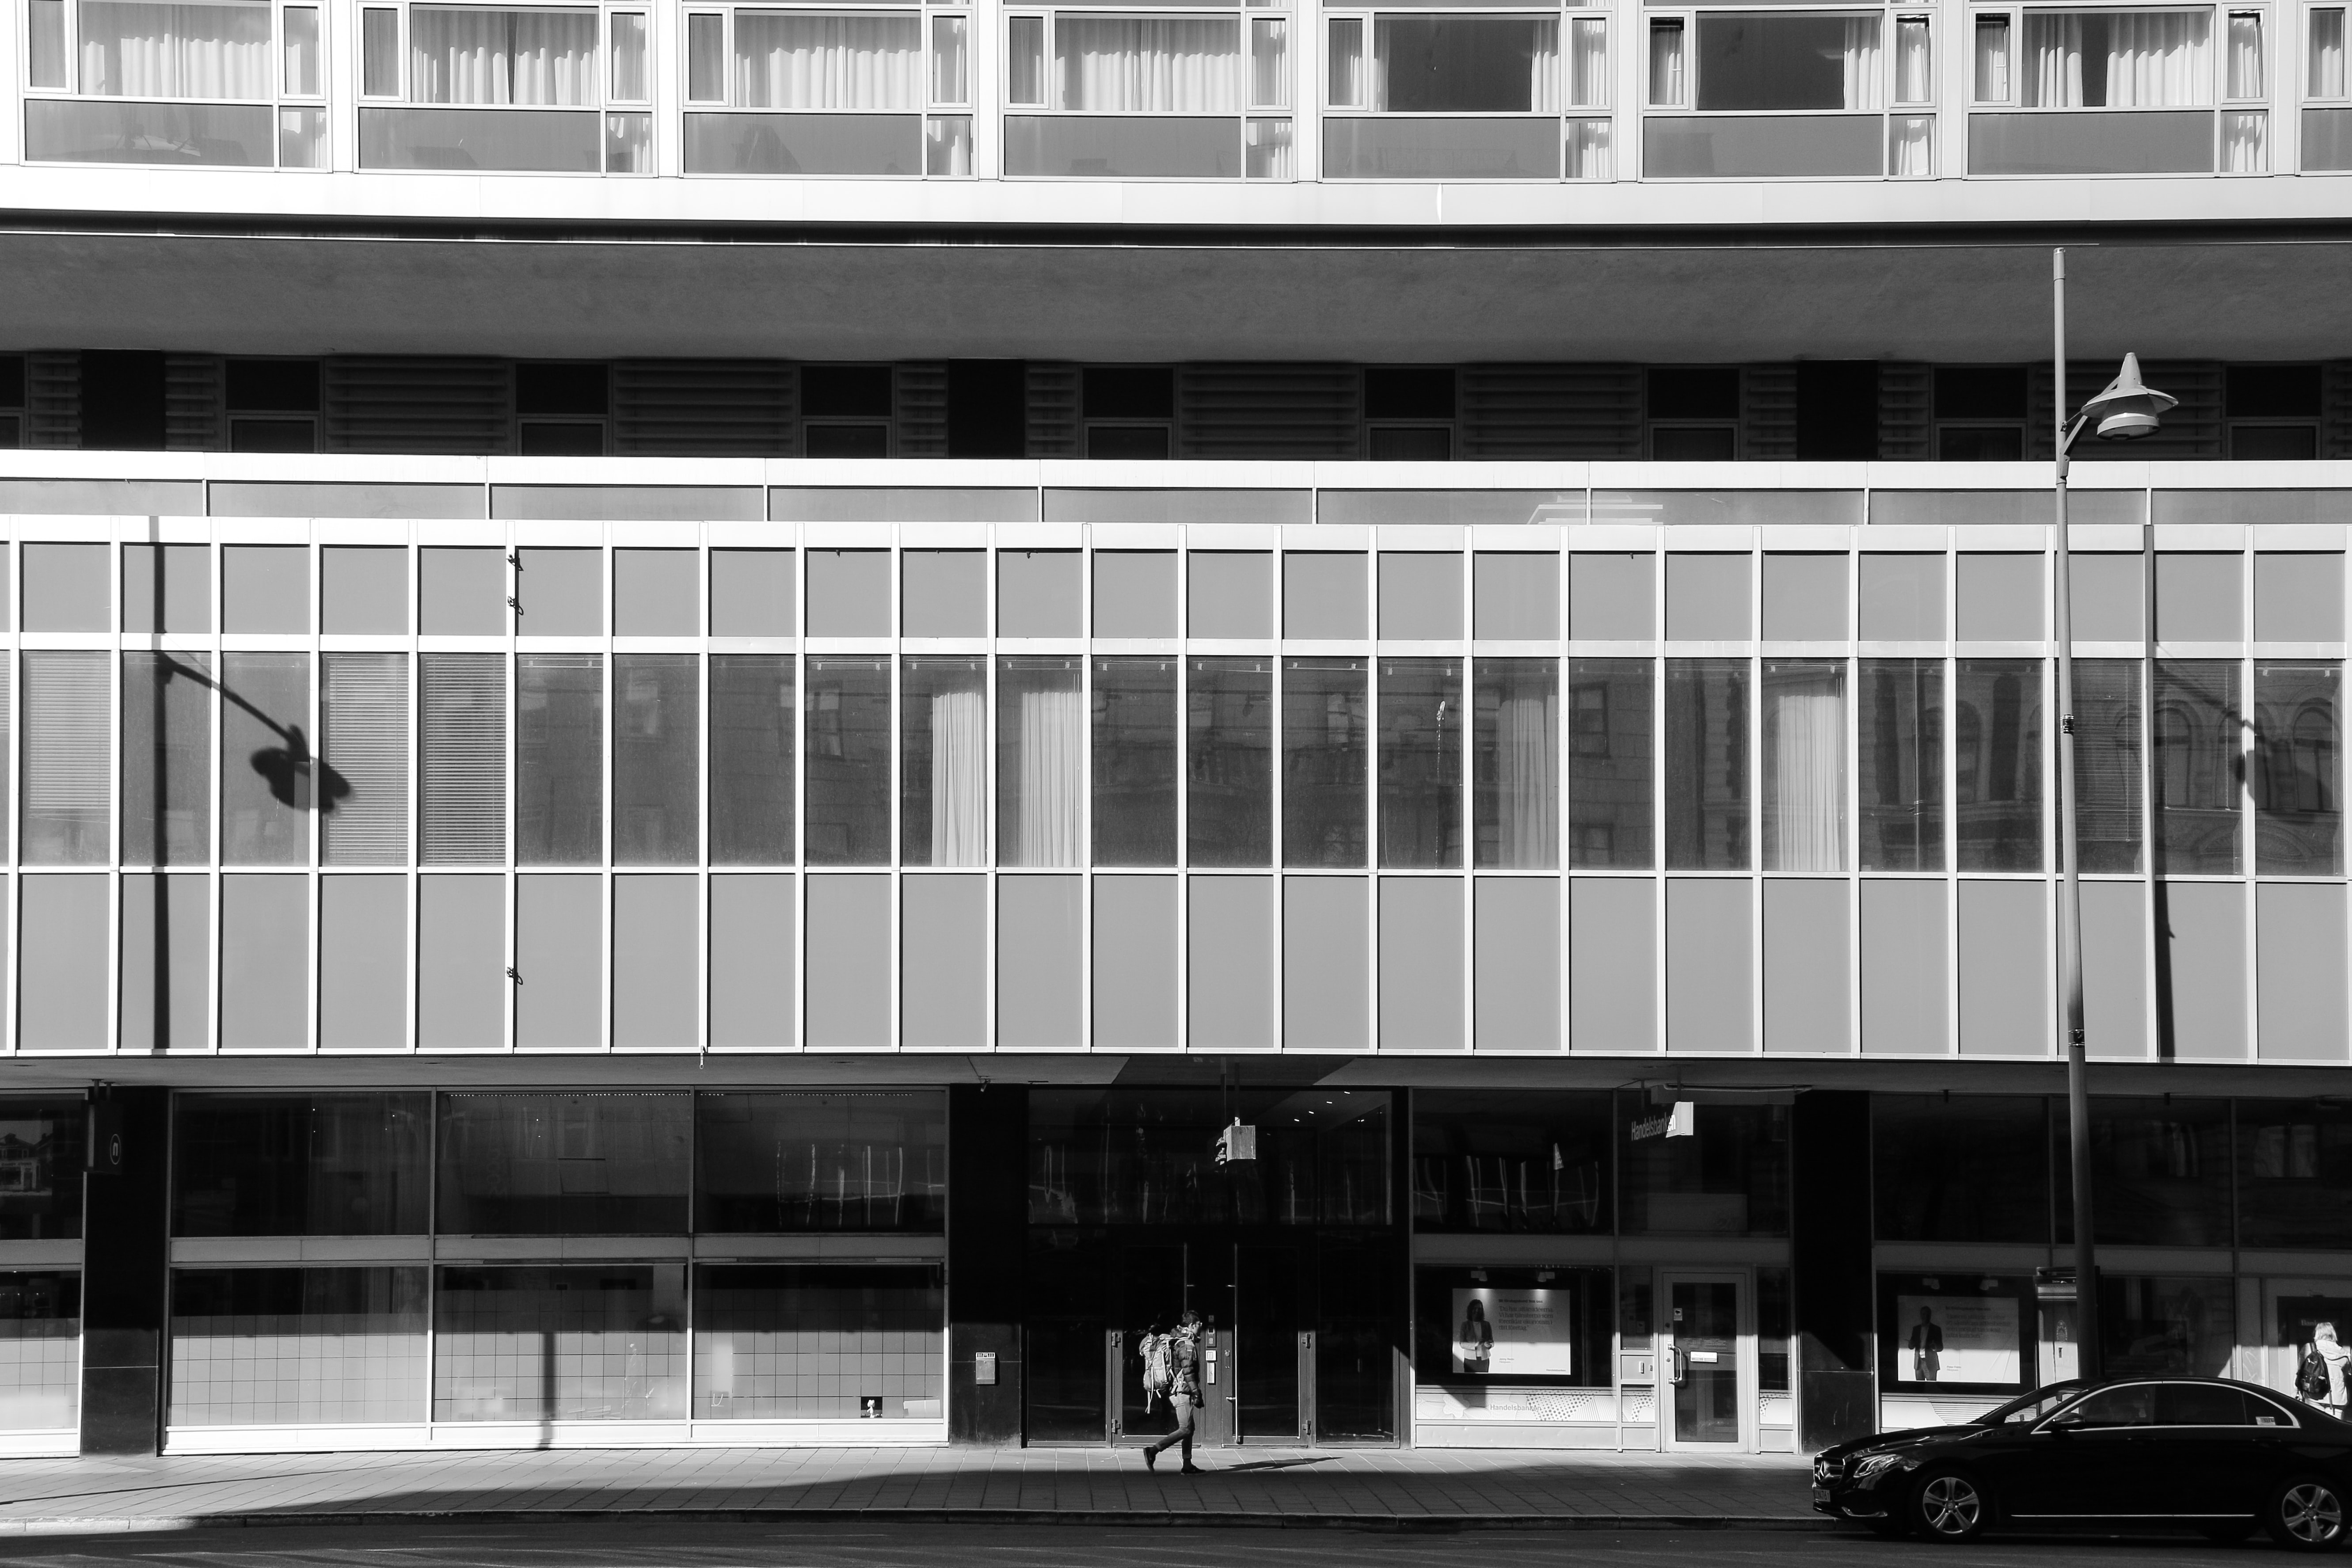 Black and white, modern building with car parked in front